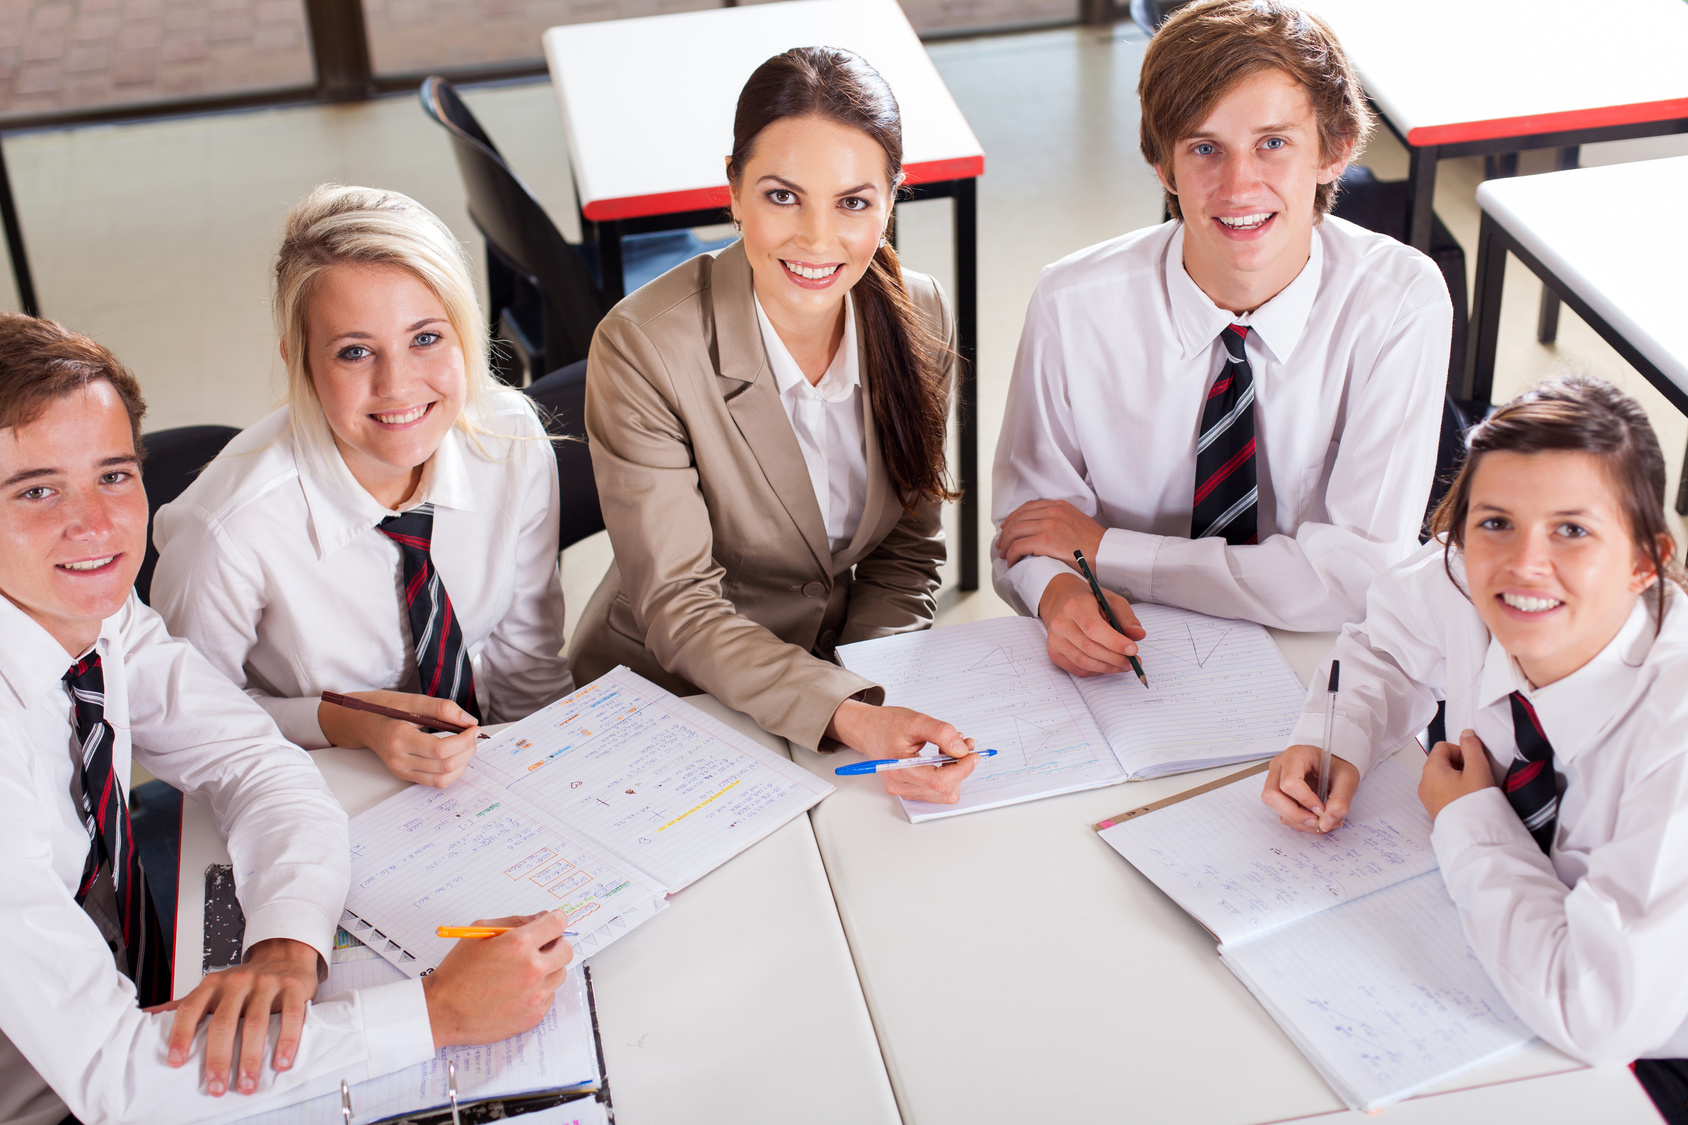 the role of a teacher has changed greatly over the years